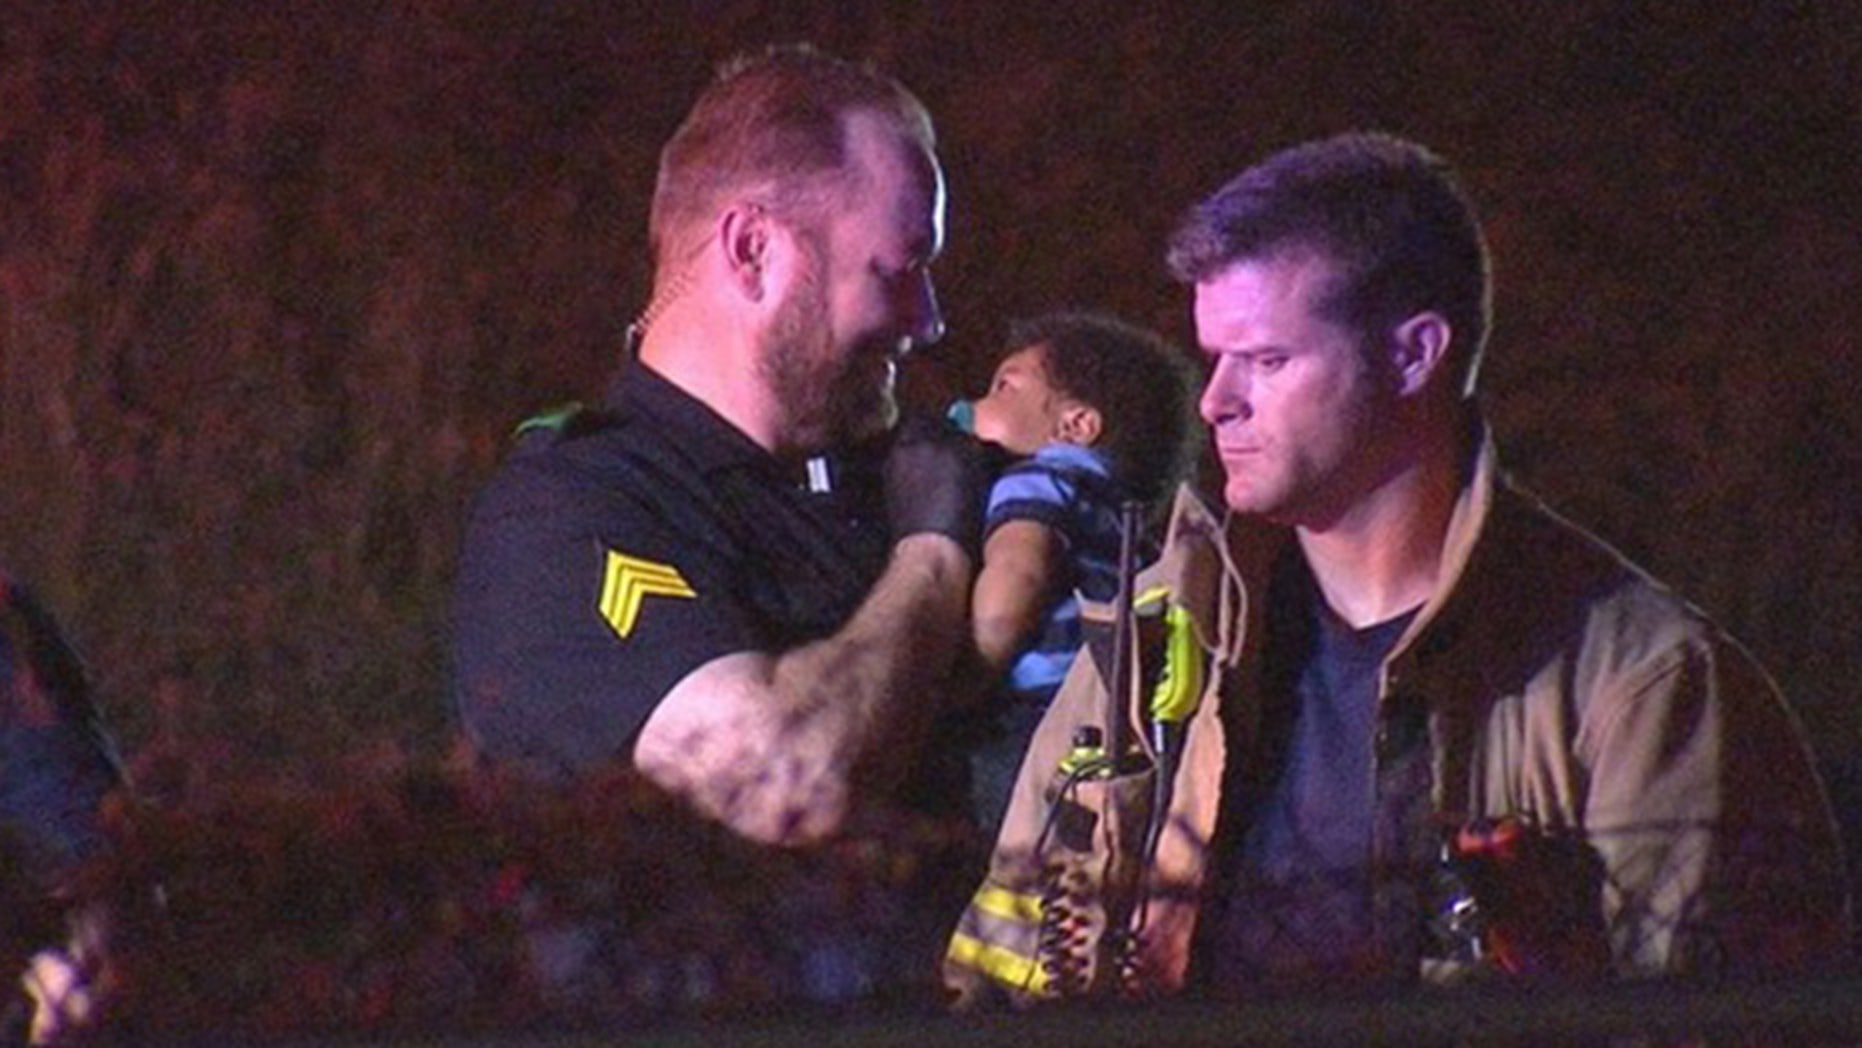 May 27, 2018: Dallas police officer Donald Boice is being praised after photos showed him comforting a 3-month-old infant at the scene of an accident.